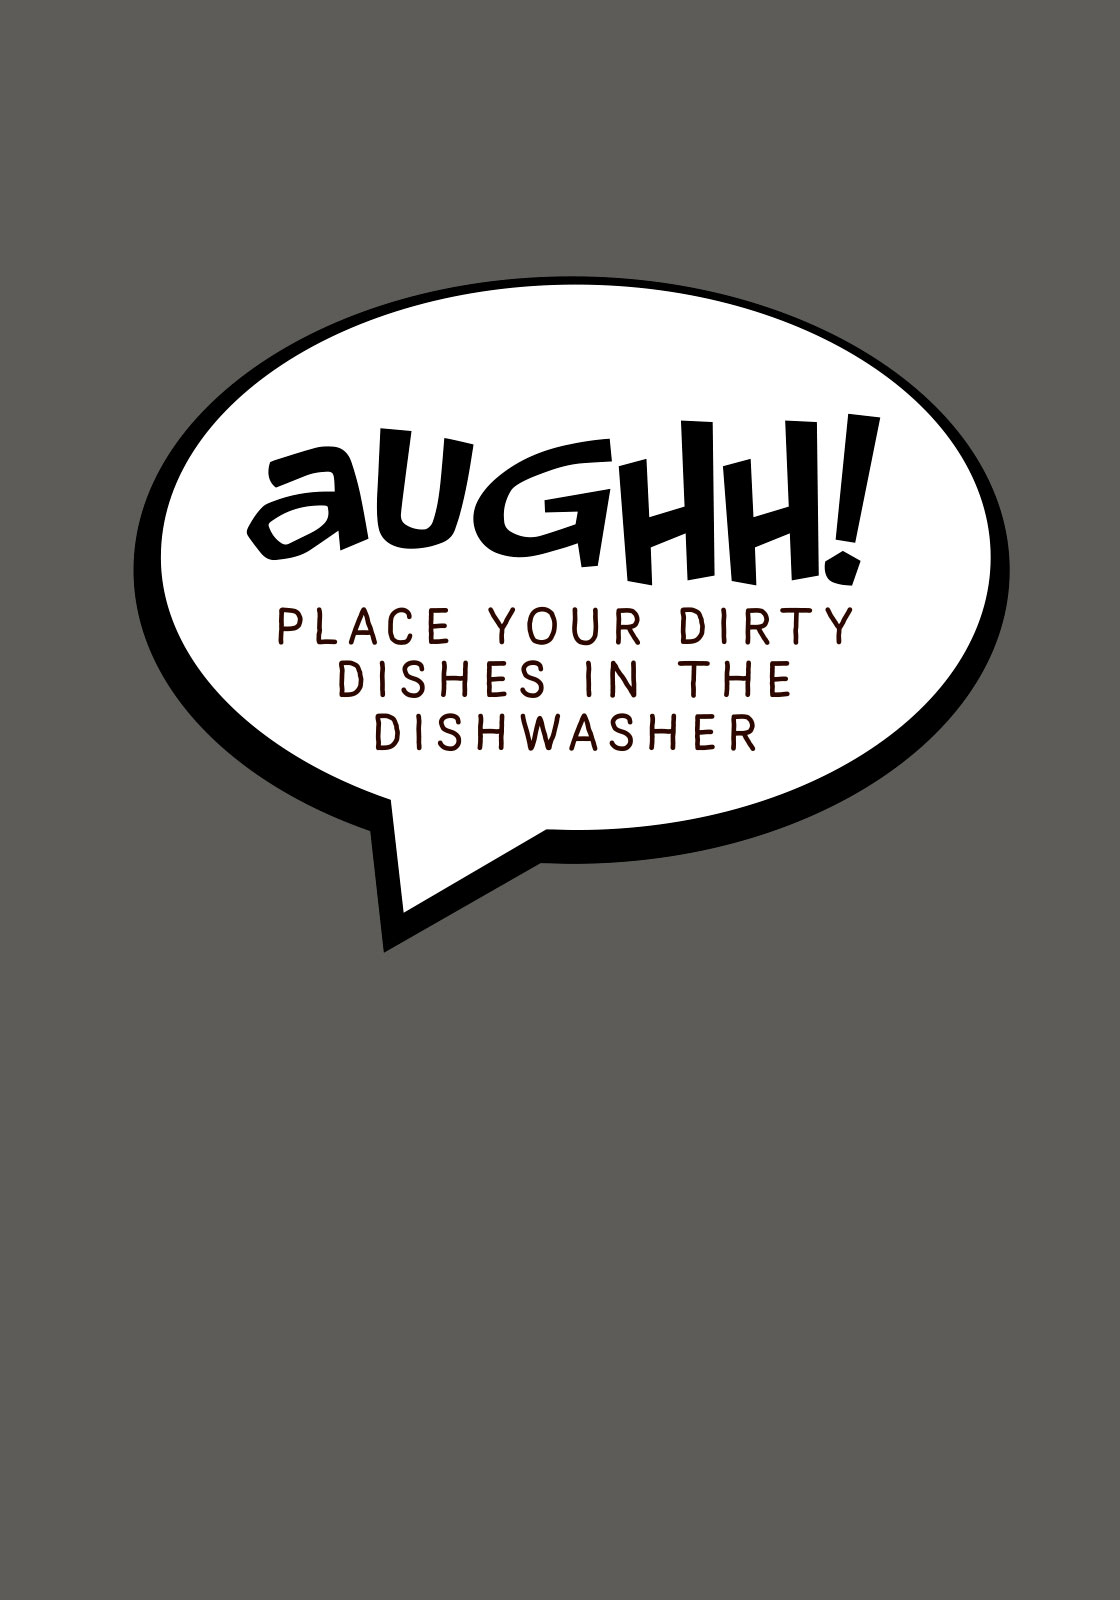 Image of Aughh dirty dishes af Ten Valleys